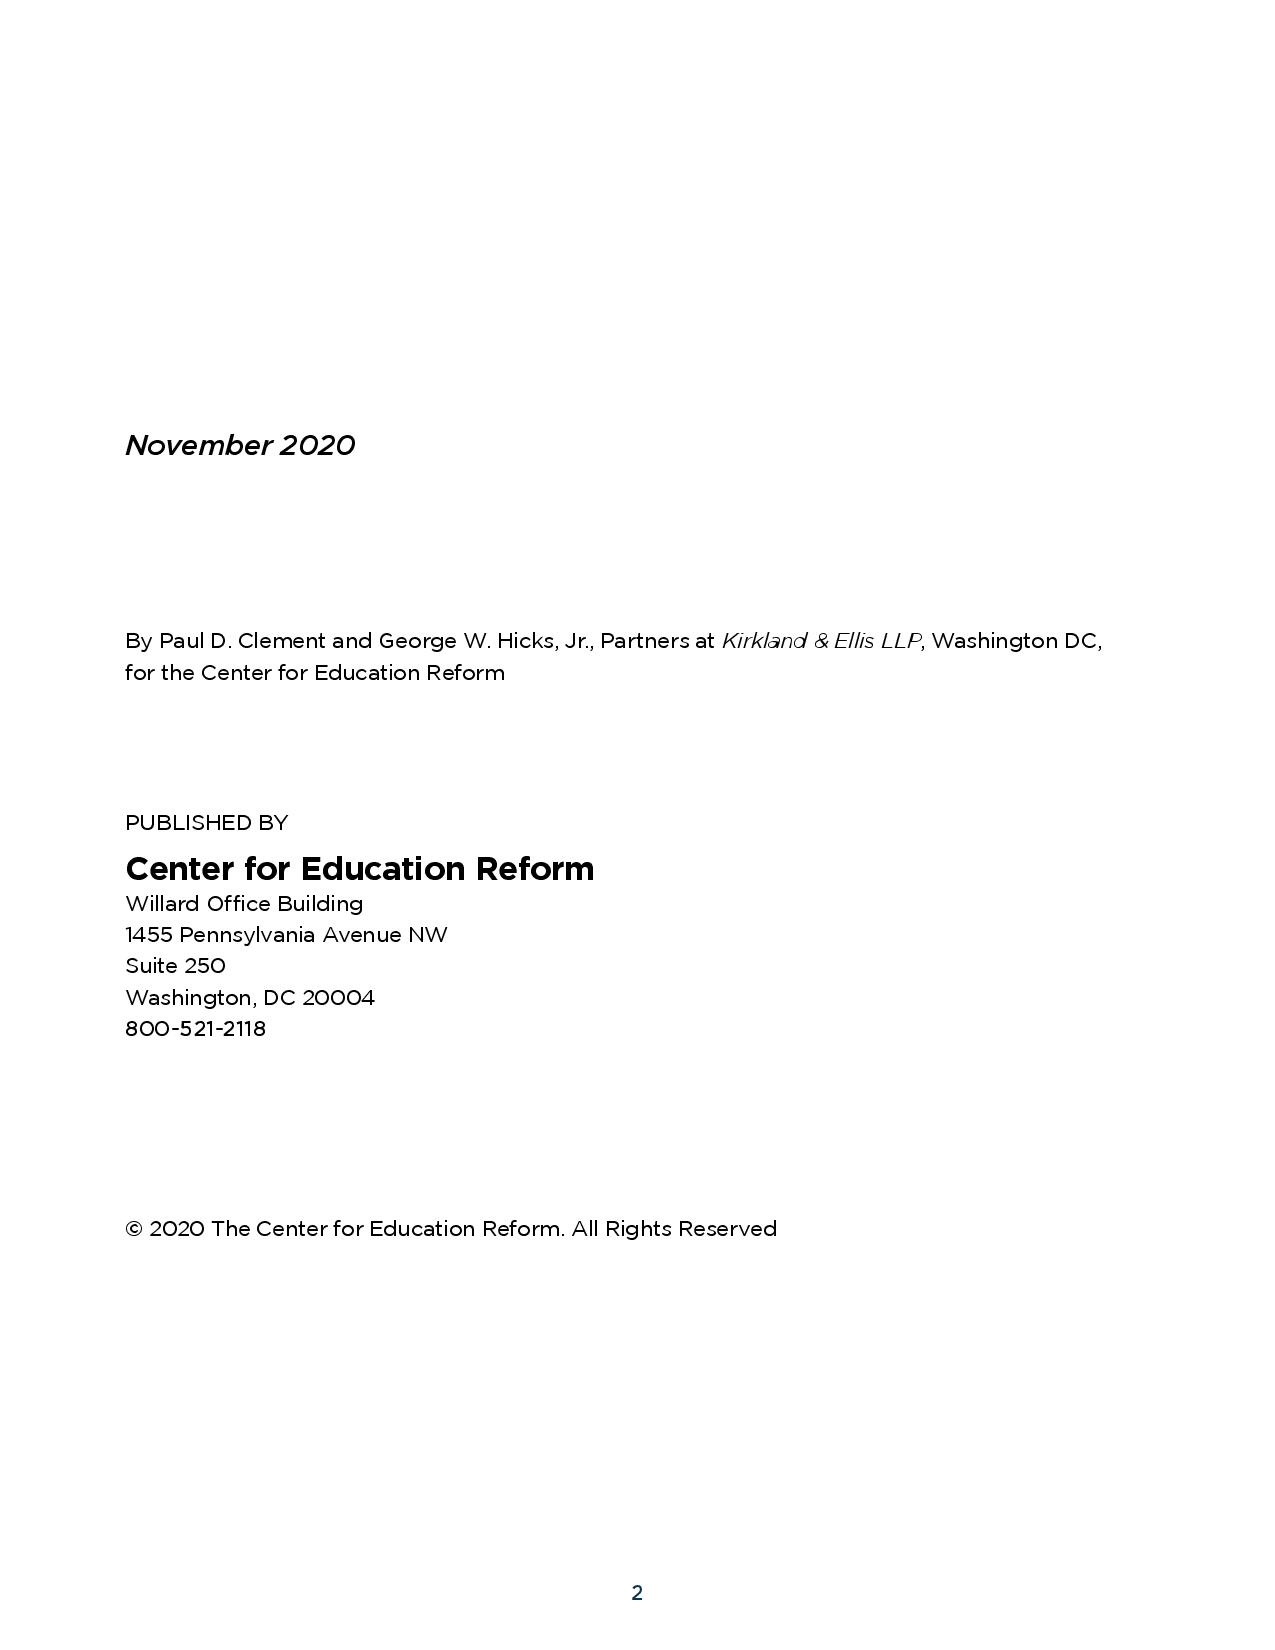 CER_Whitepaper_Blaine-page-002